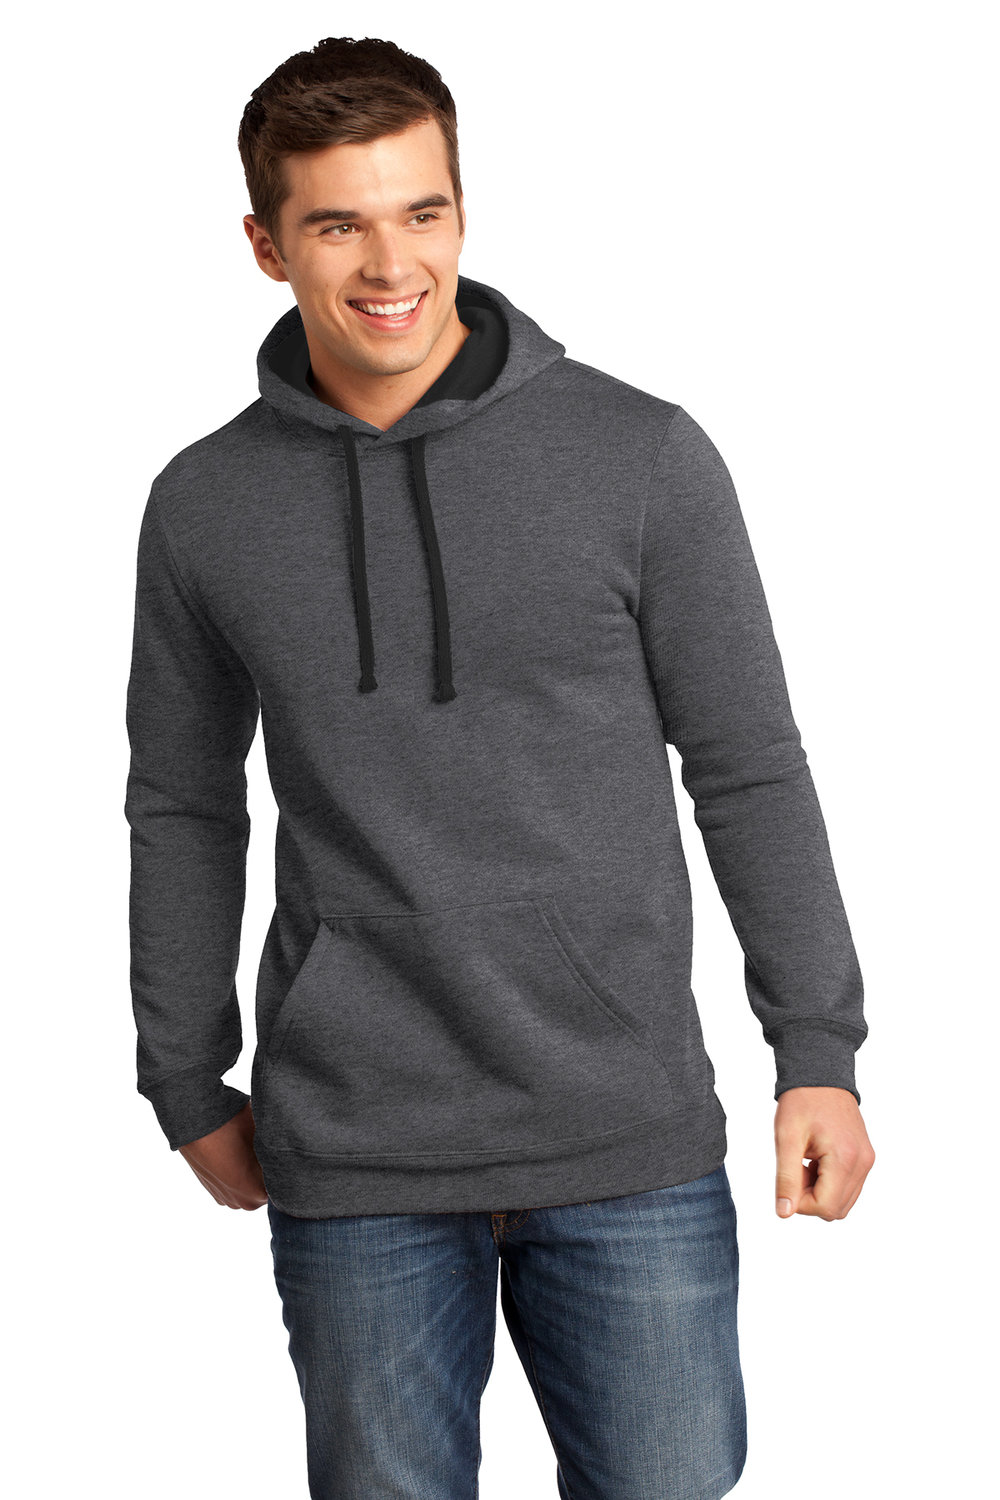 Men's sweatshirt - Charcoal (shown), Heather Gray, Black Royal Blue, Navy    | $22